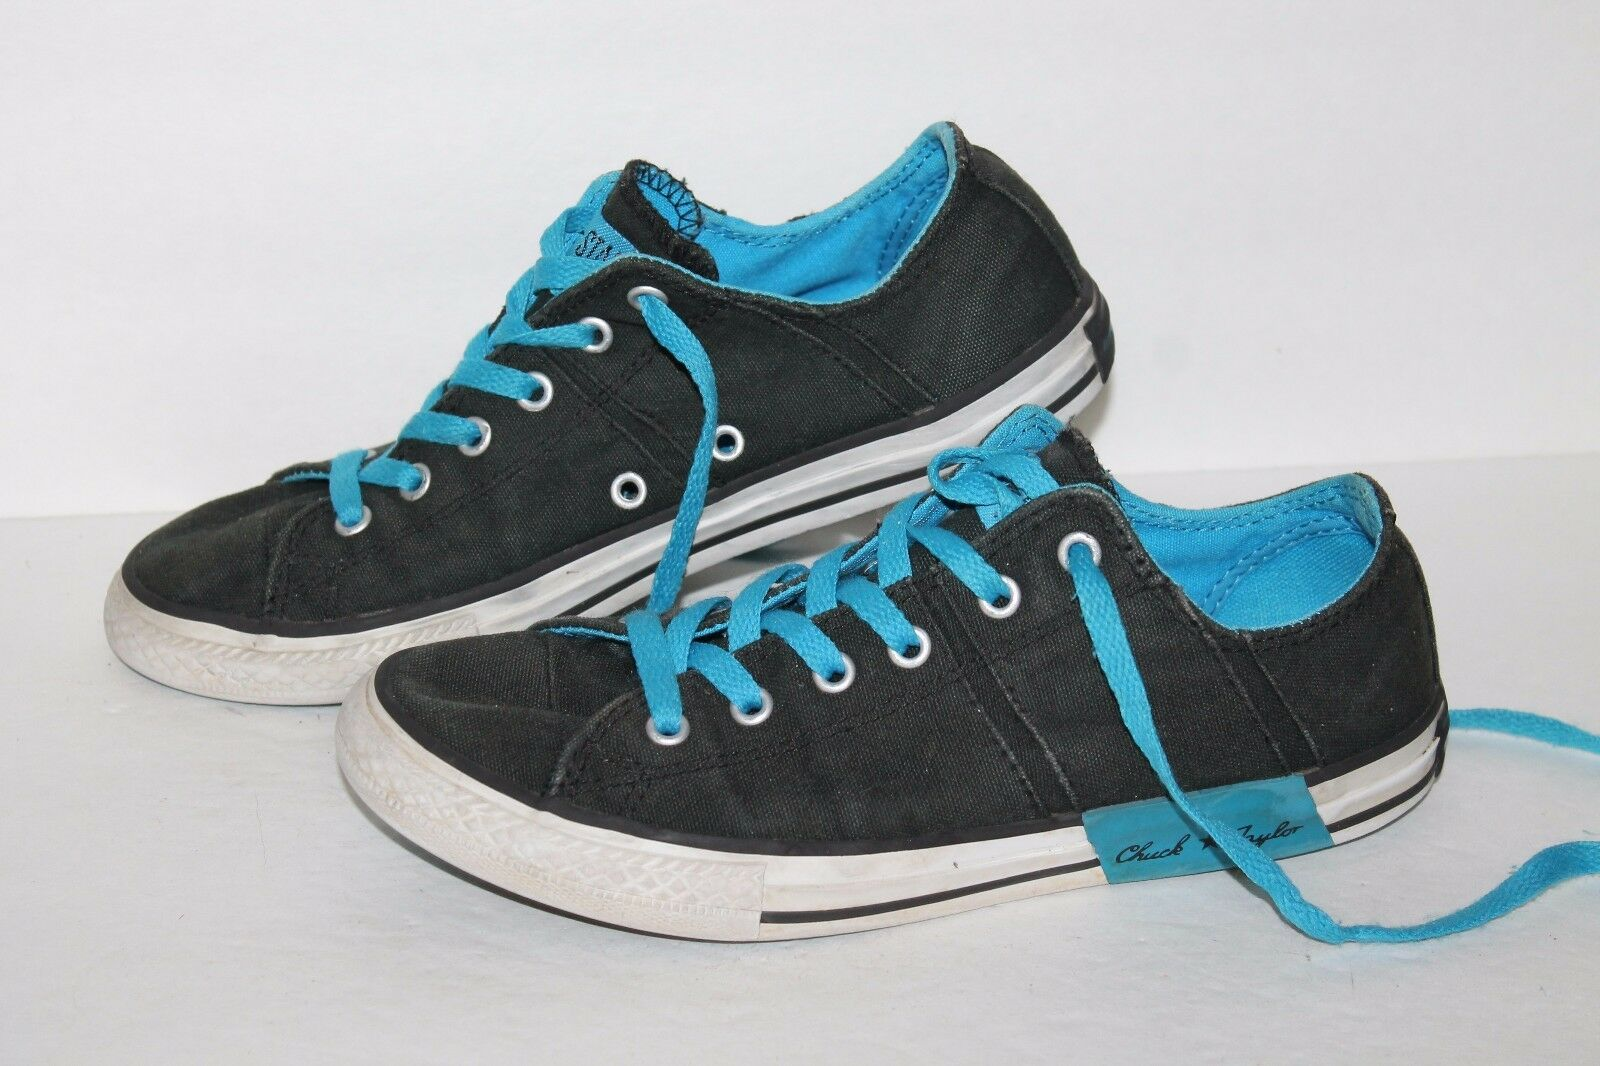 Converse All Star Low Casual Sneakers, F, Black/Blue, Mens US Size 5